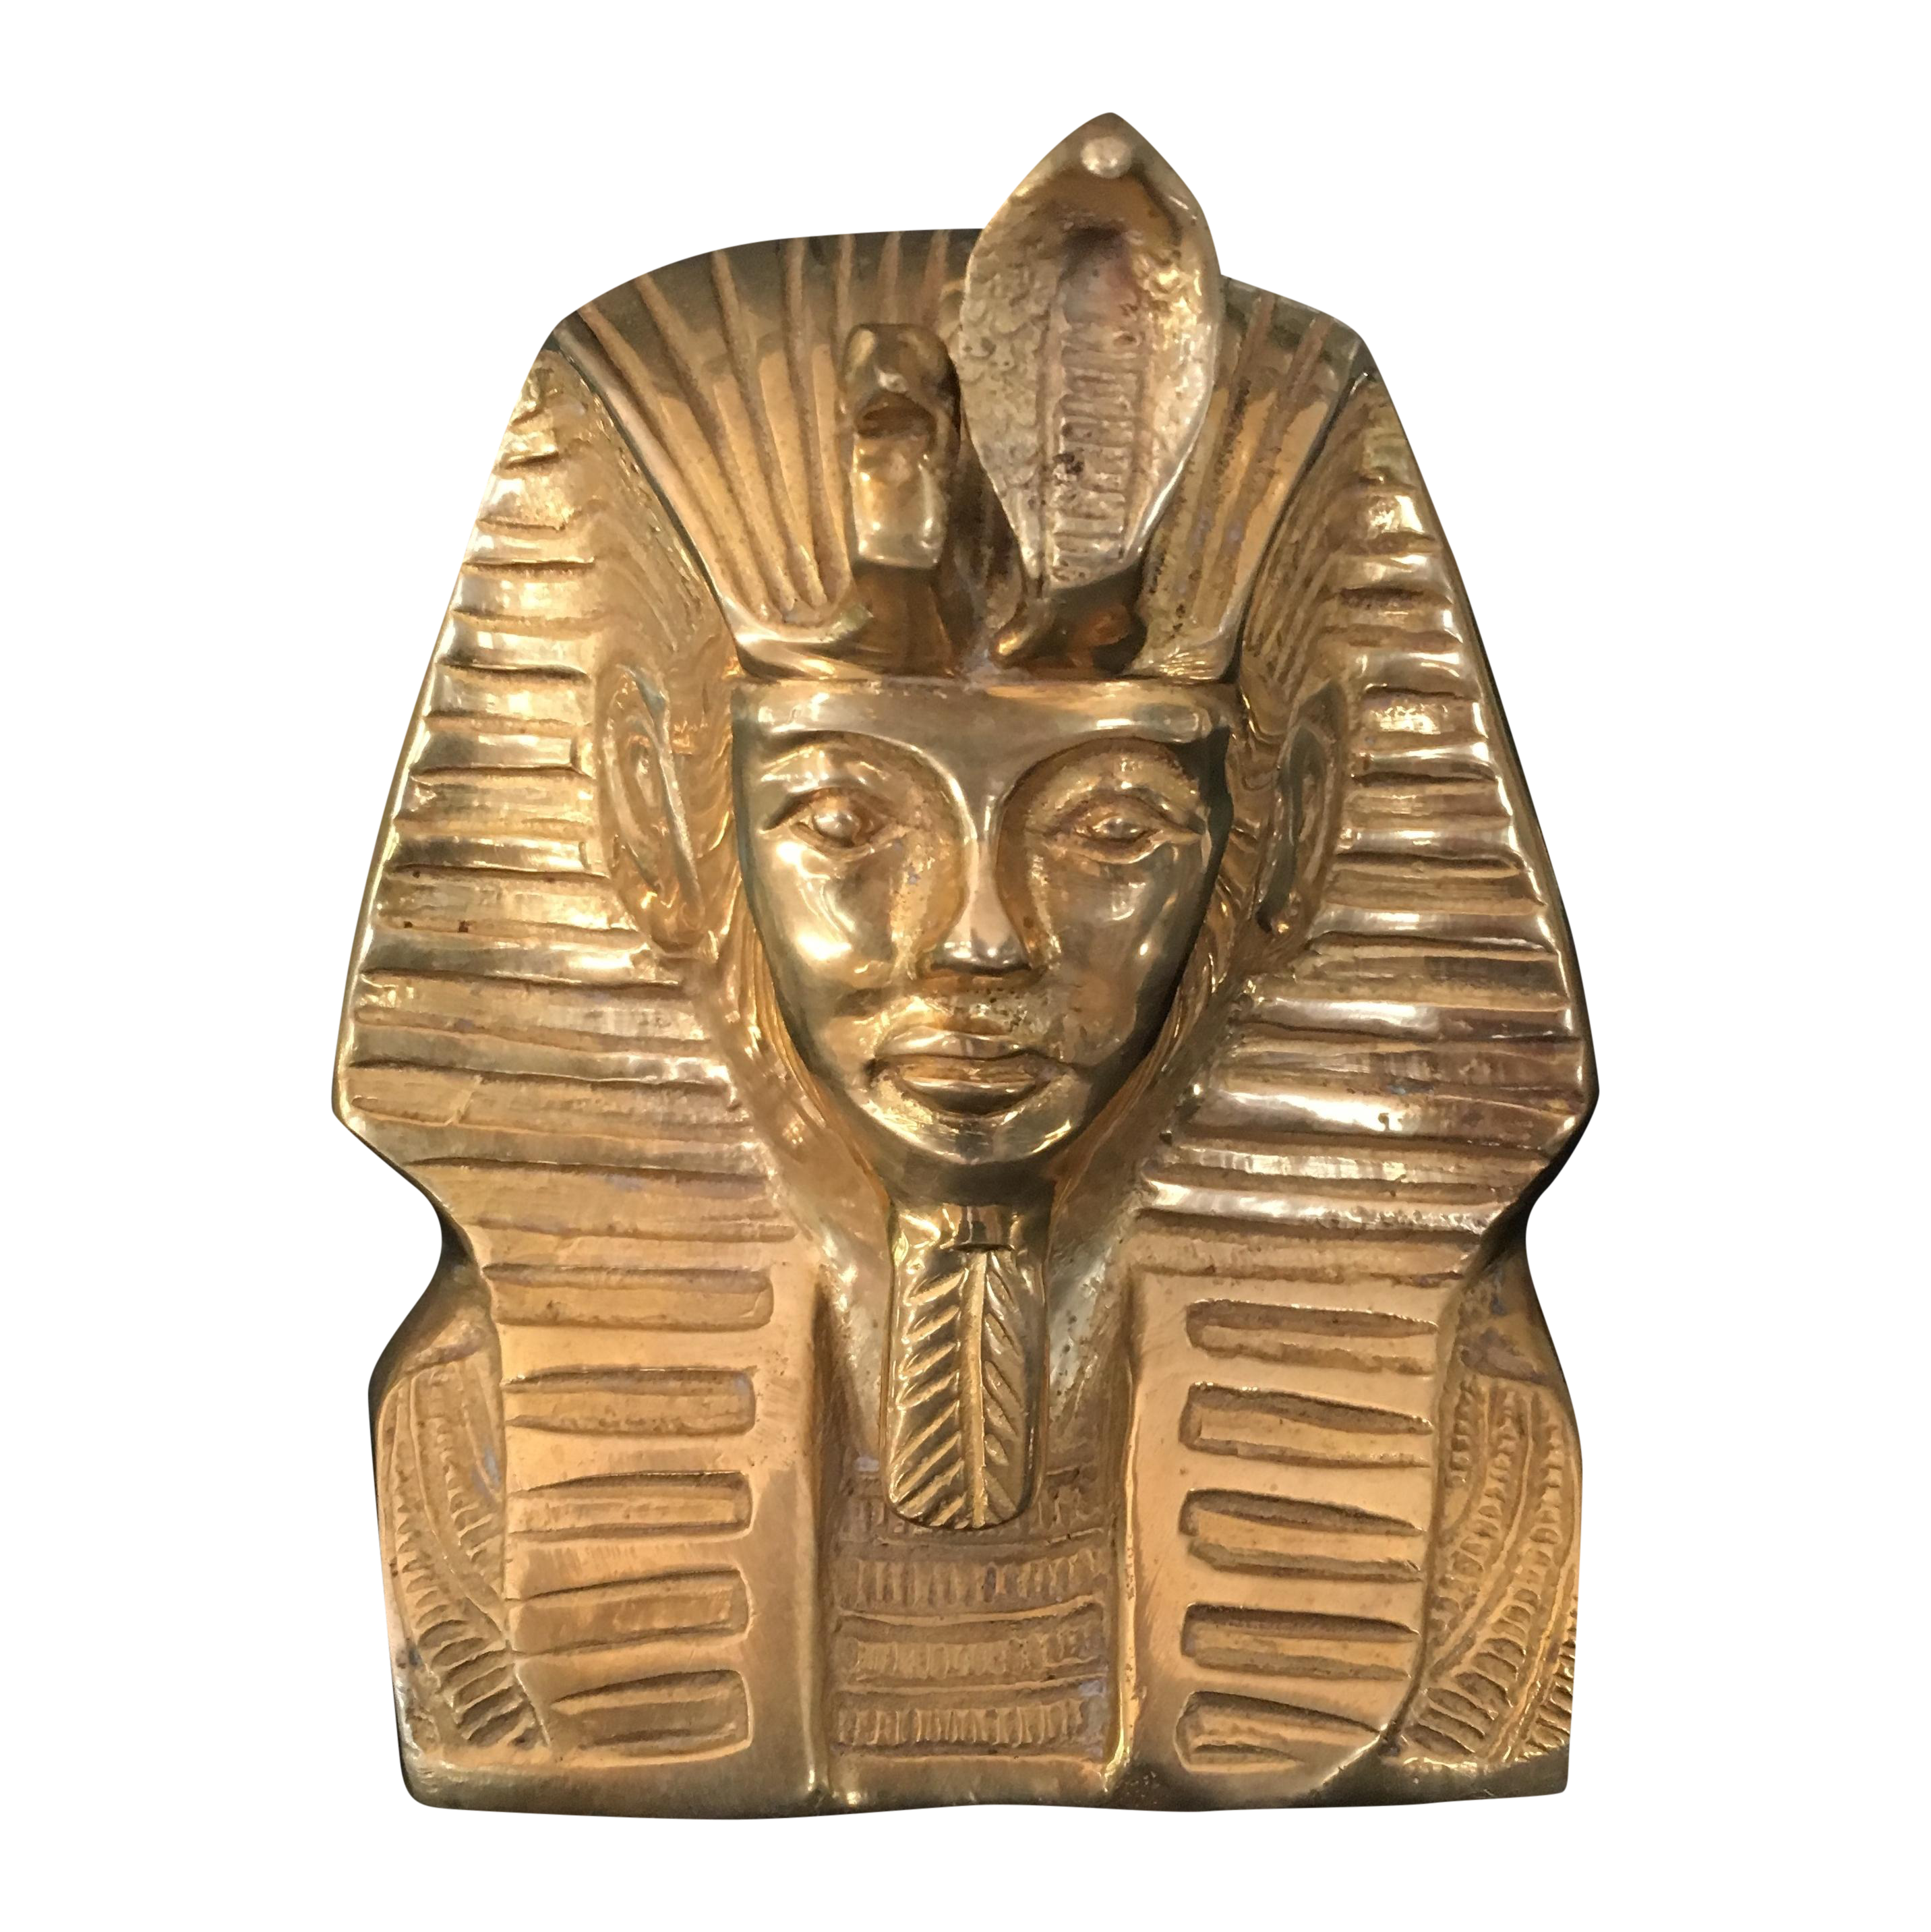 Vintage Solid Brass Egyptian Bust Of King Tut On Chairish Com Models And Figurines King Tut Egyptian